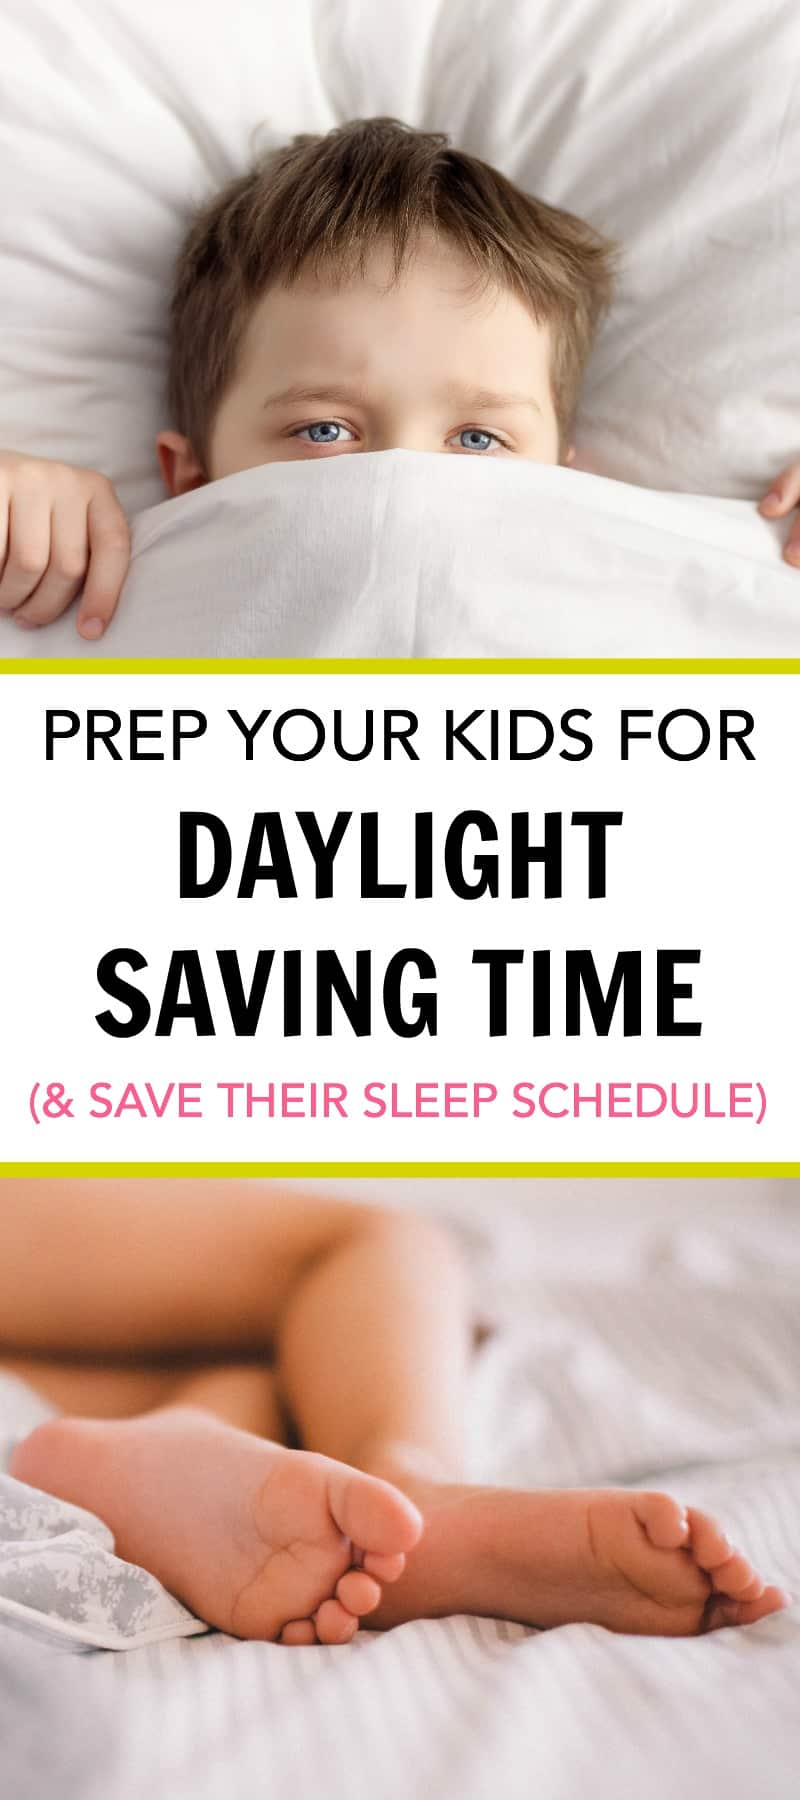 Prep Your Kids for Daylight Saving Time